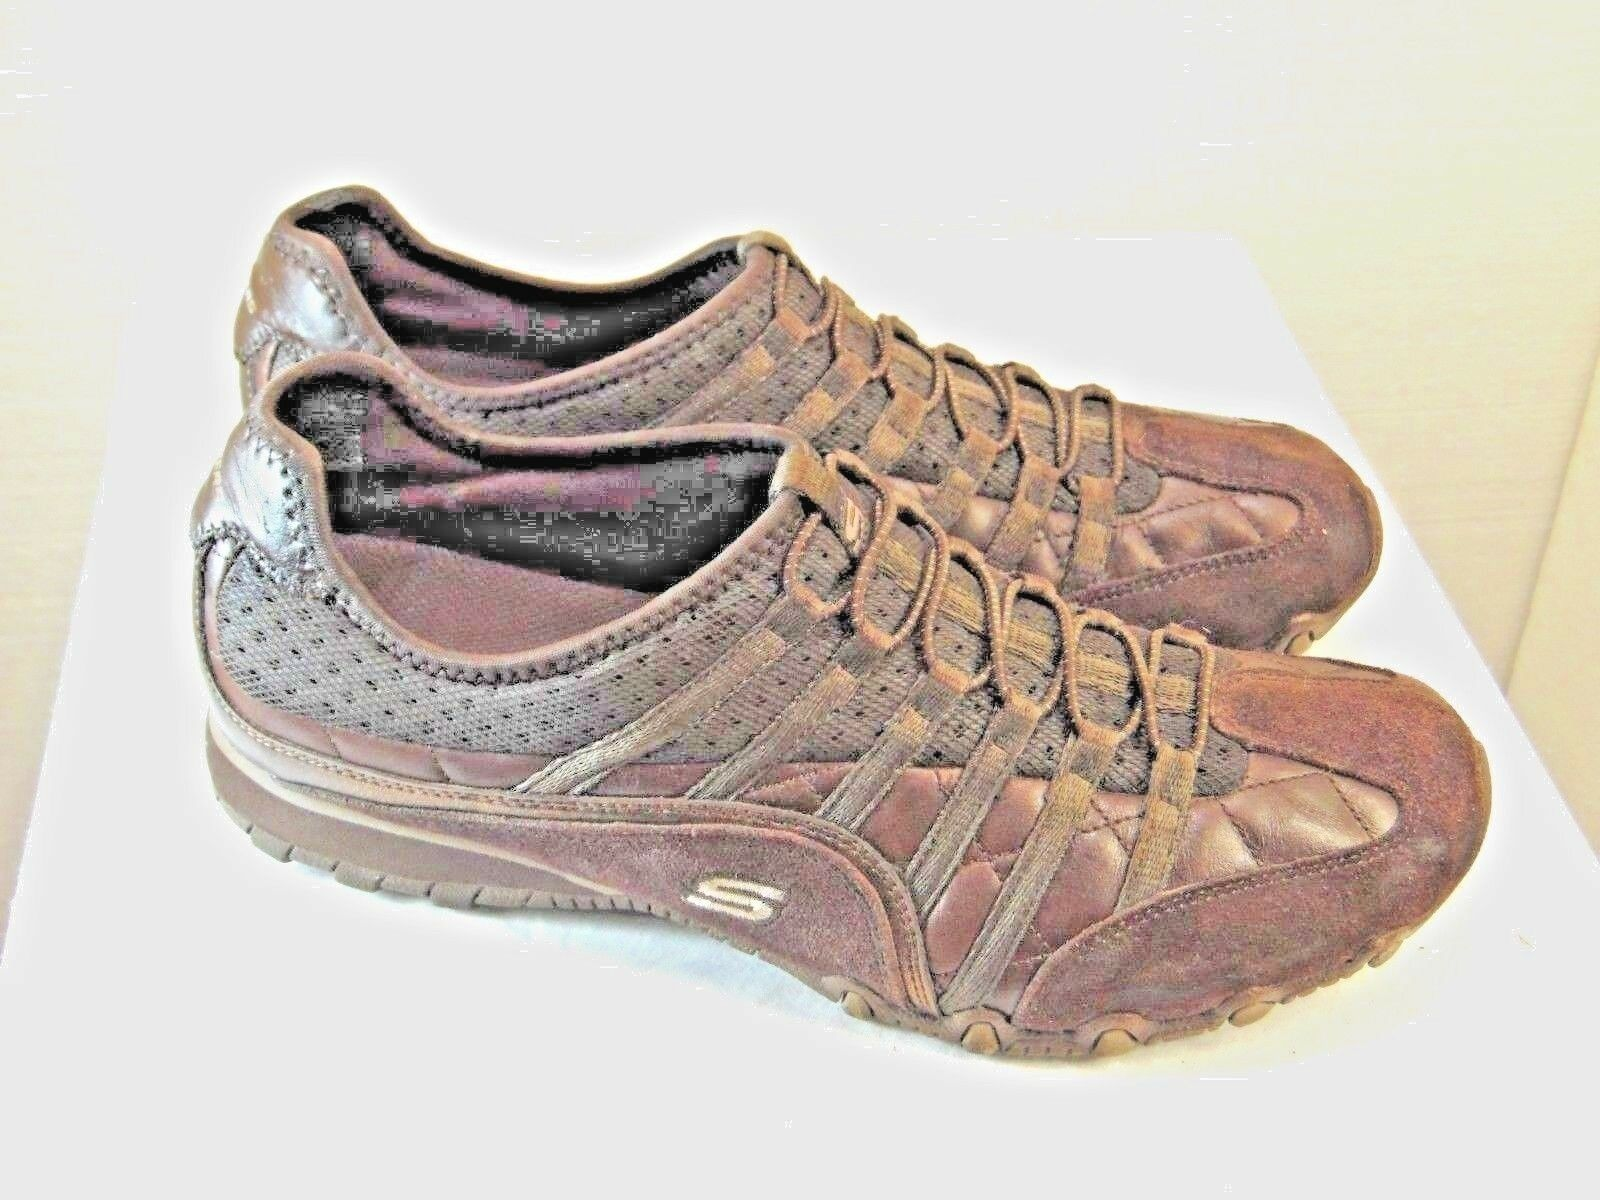 WOMENS CASUAL ATHLETIC SHOES SKECHERS BRAND SIZE 10 DARK BROWN COLOR   ZT3